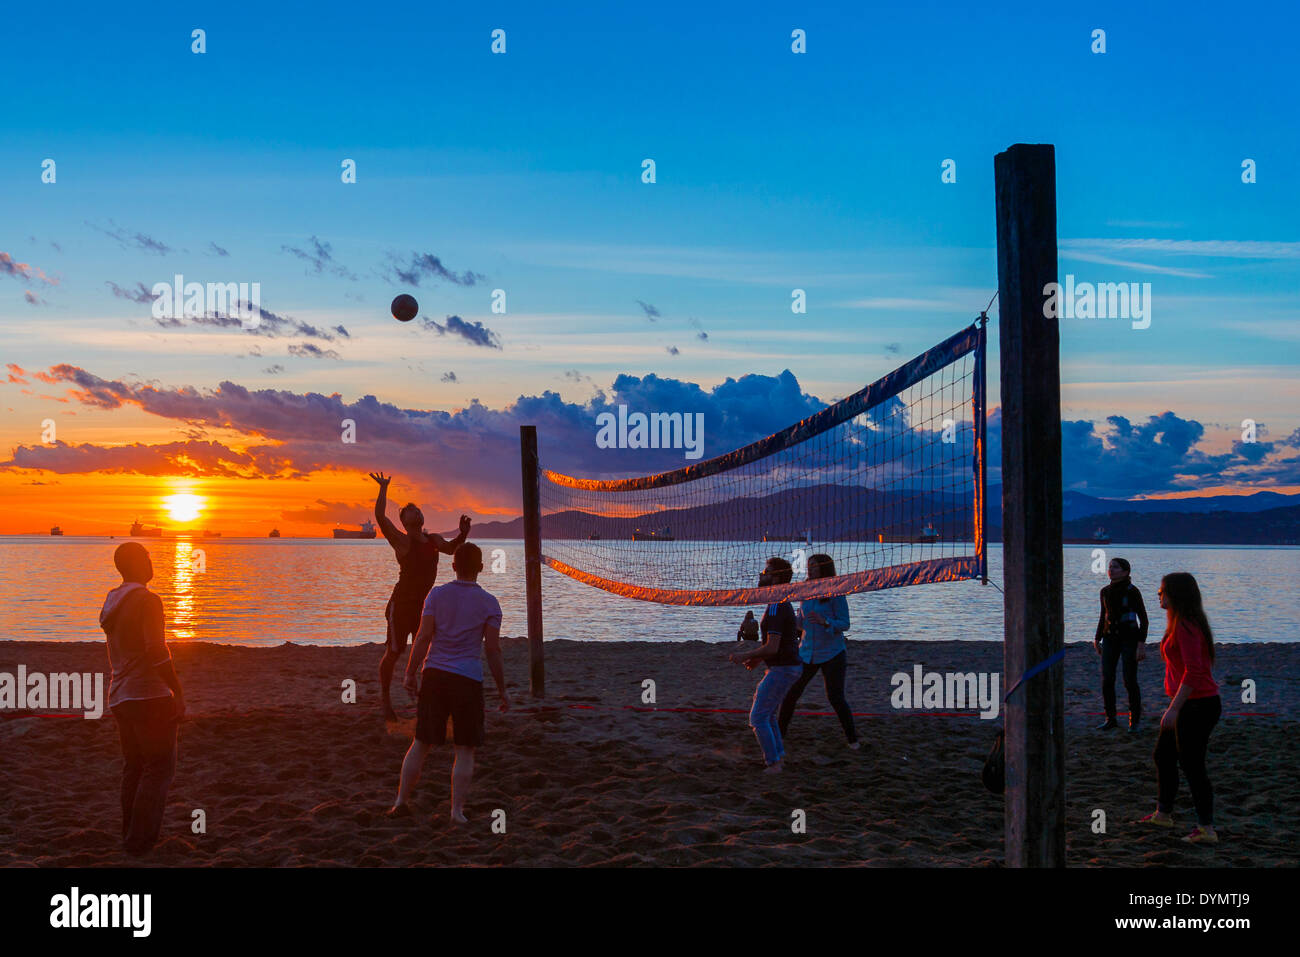 Une partie de beach-volley à Sunset Beach, plage d'English Bay, Vancouver, British Columbia, Canada Photo Stock